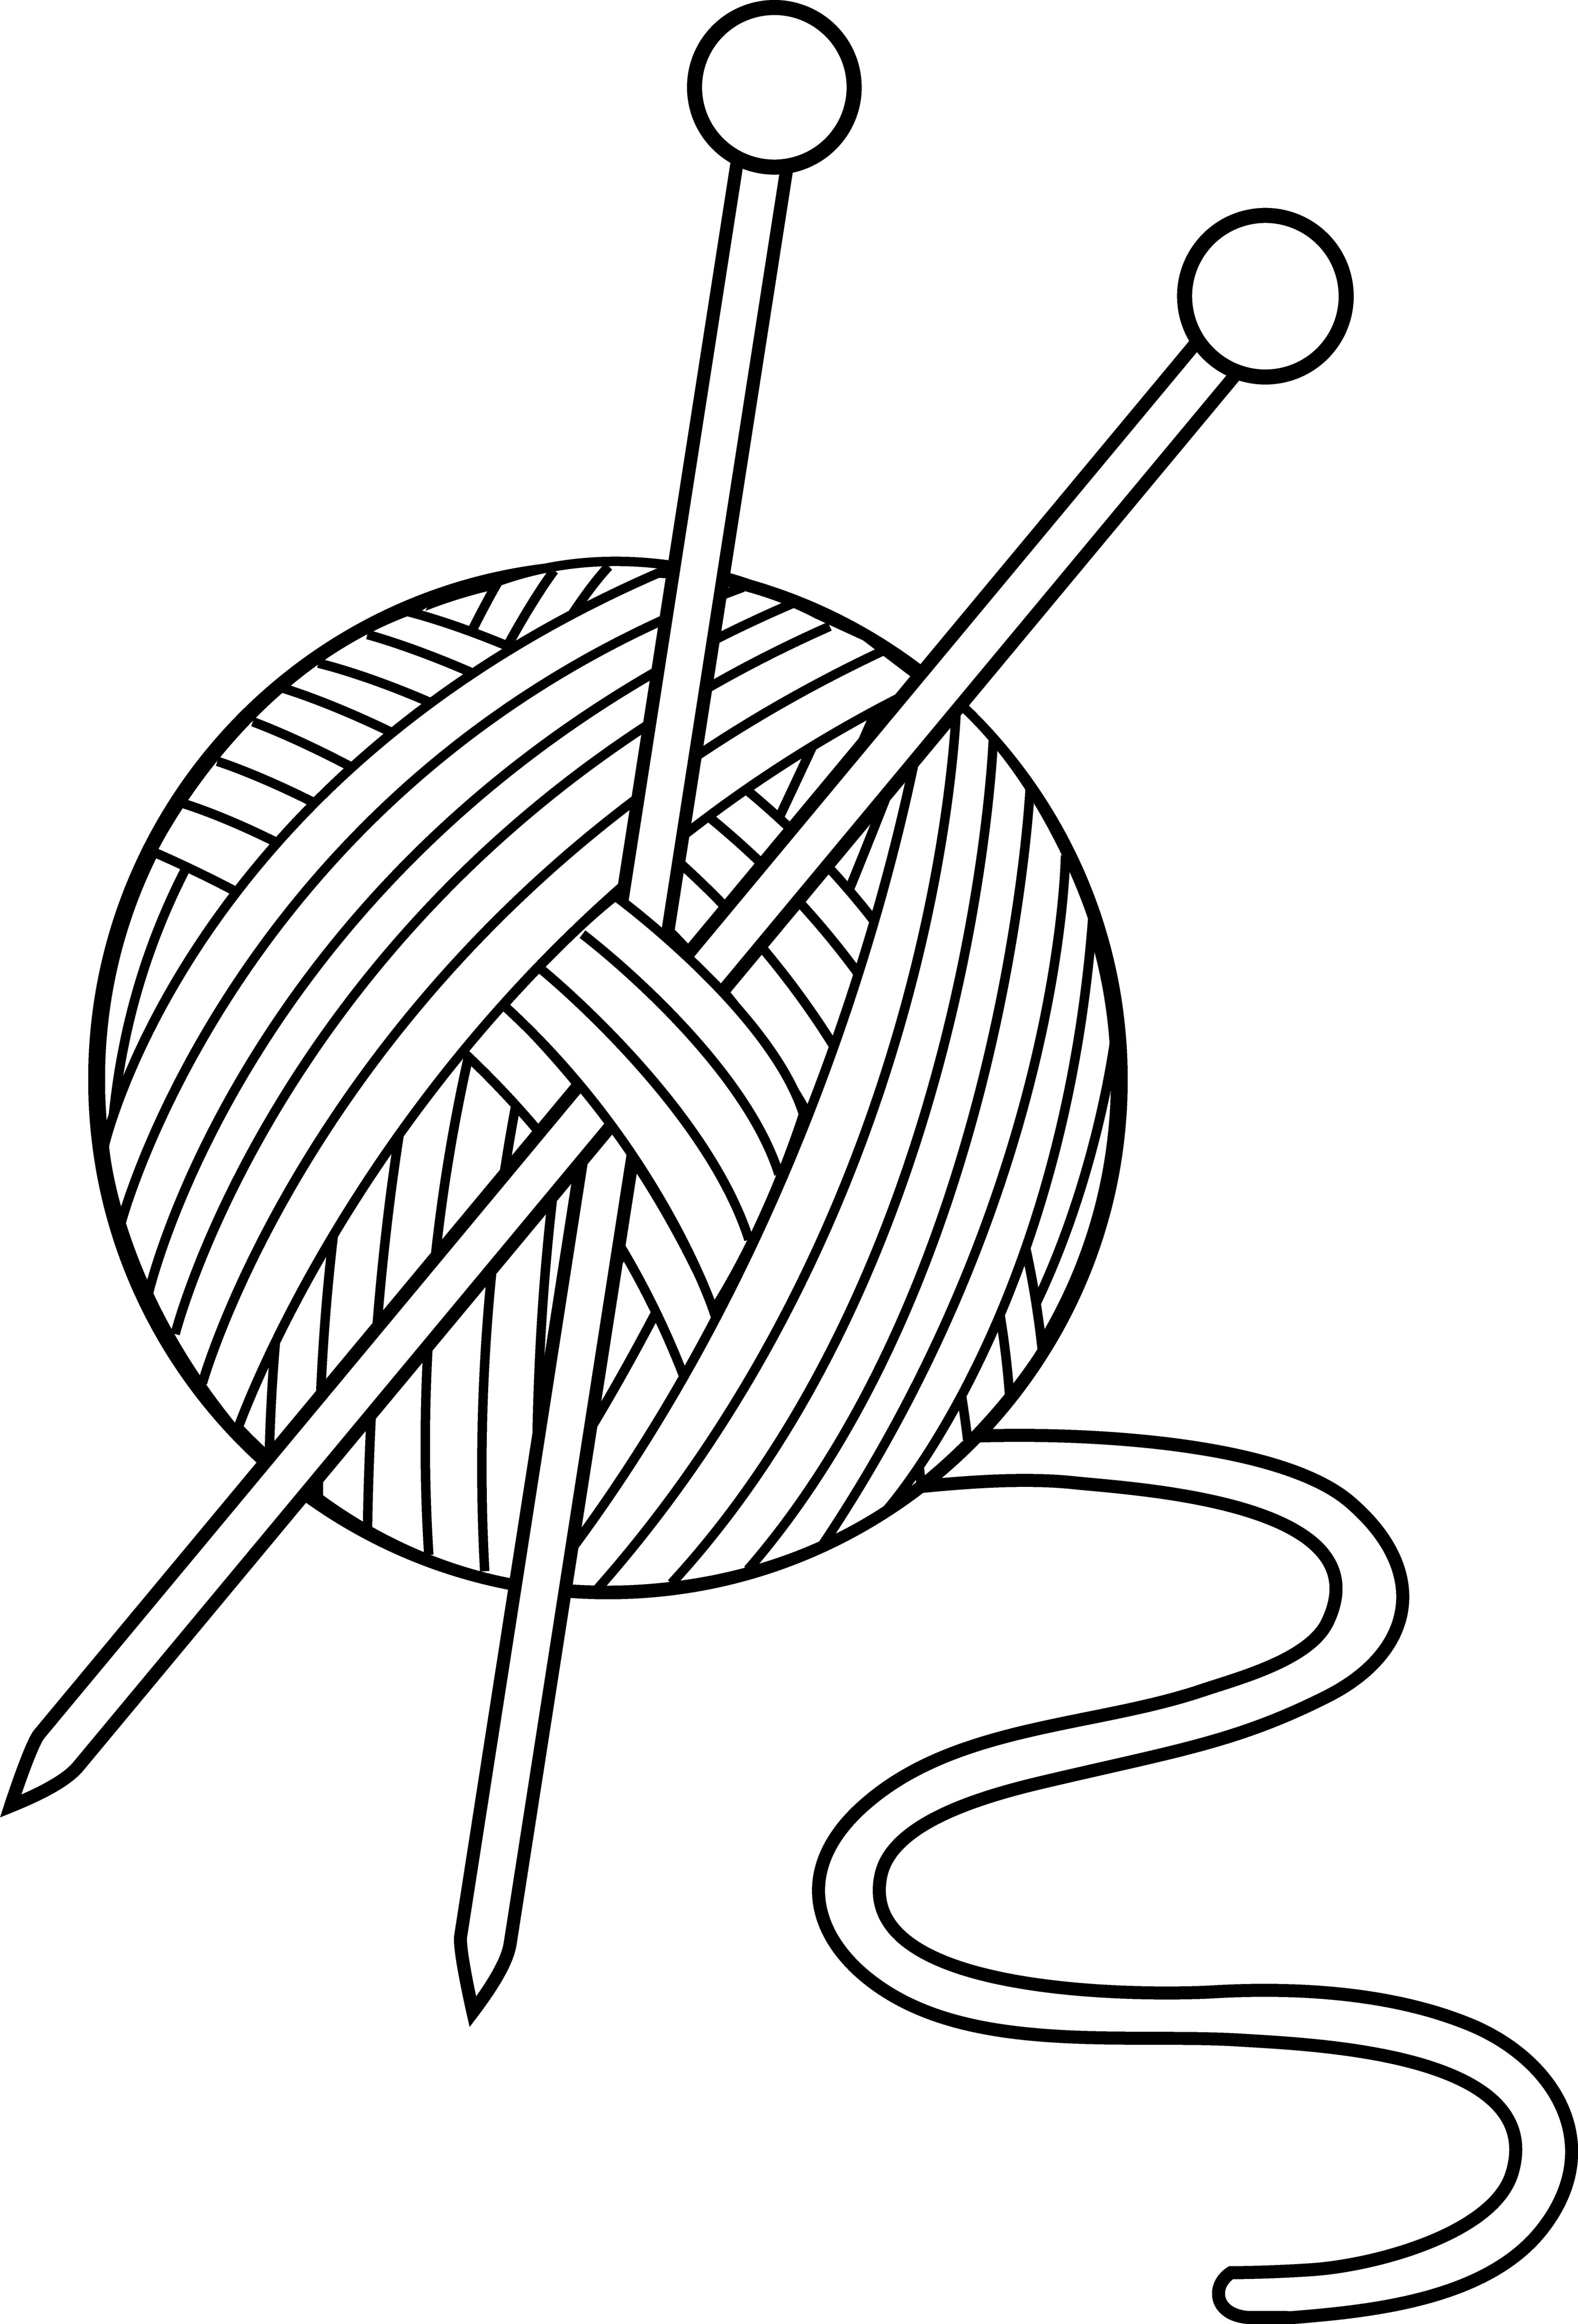 Yarn clipart ball twine. Drawing at getdrawings com